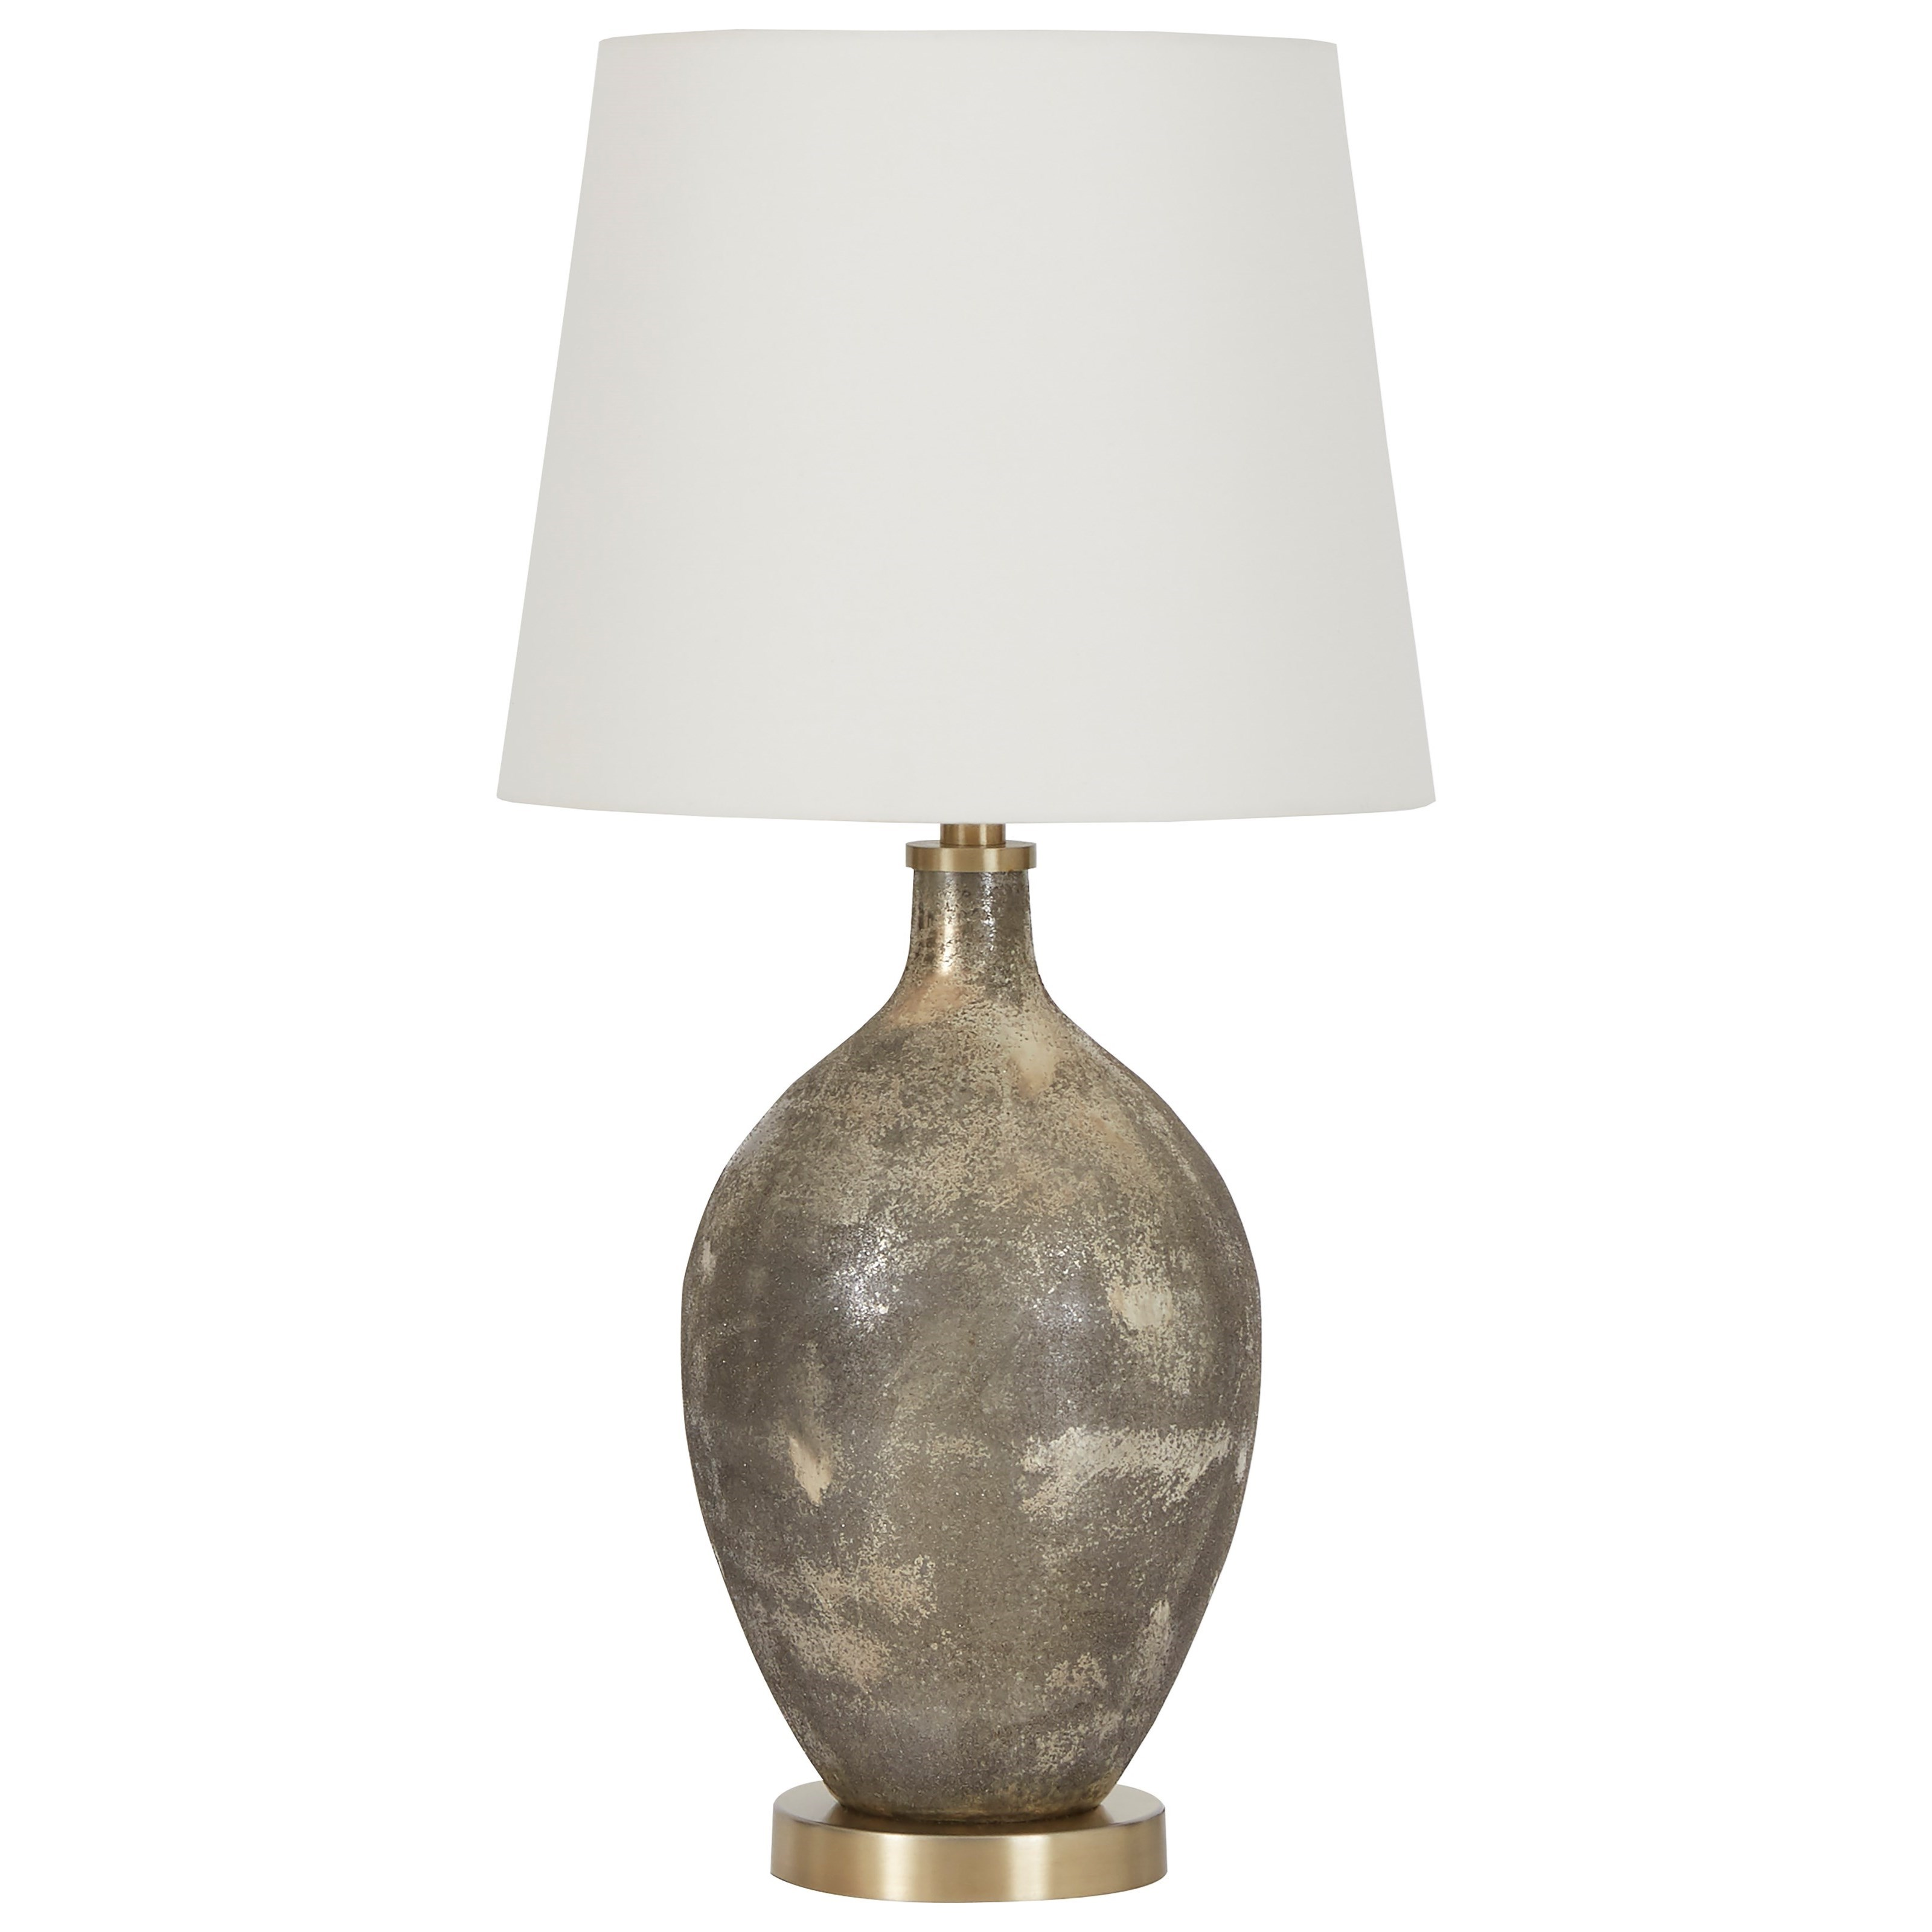 Lamps - Contemporary Jemarie Gray/Gold Finish Glass Table Lamp by Signature Design by Ashley at Northeast Factory Direct